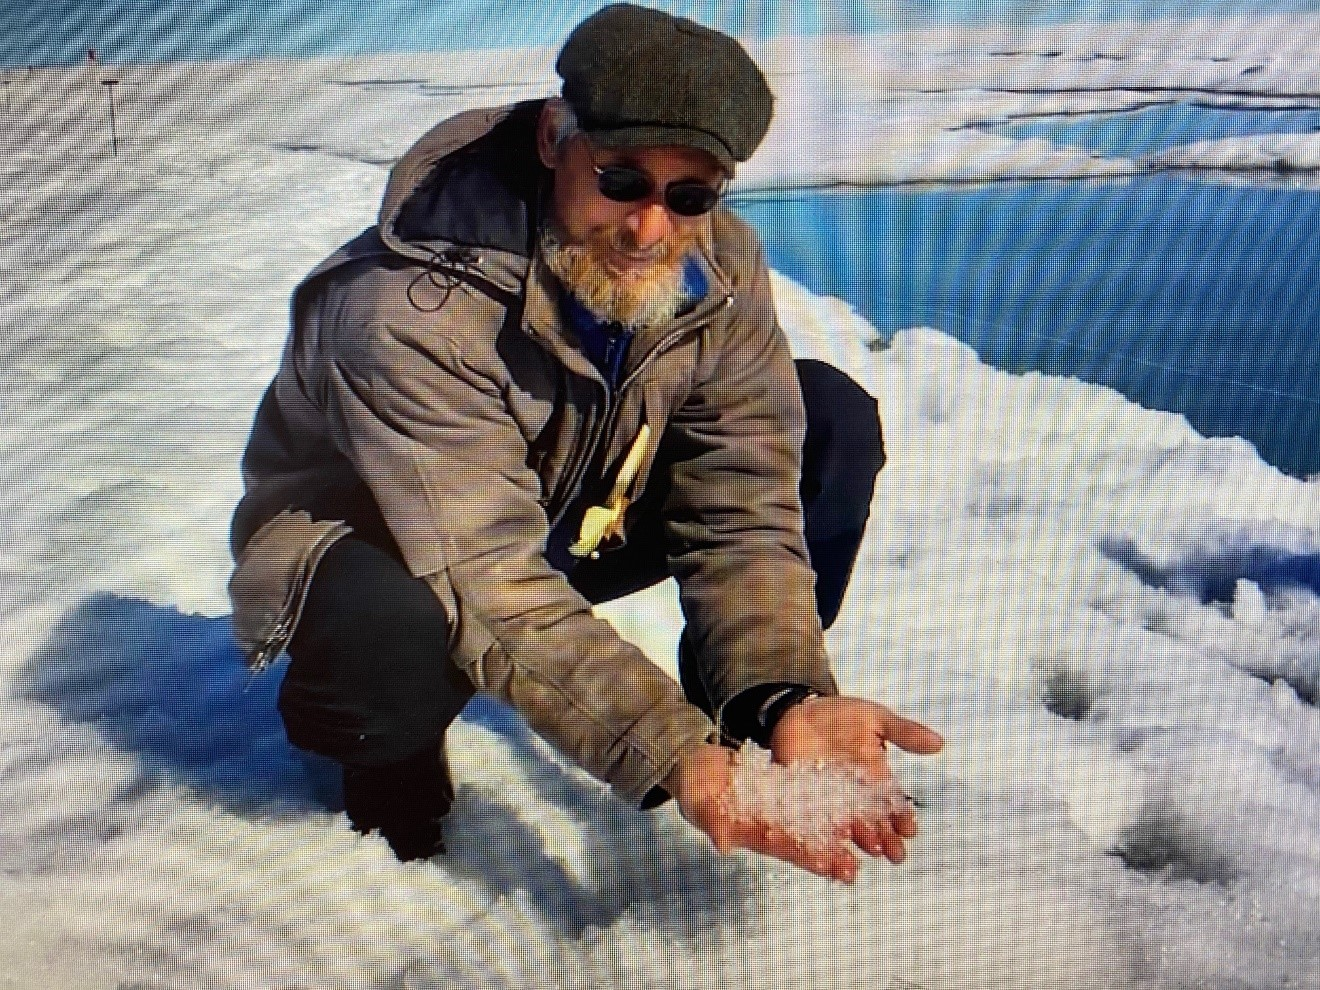 During a 2019 snow-sampling excursion in the North Slope of Alaska, Matthew Sturm scoops up icy snow near a springtime melt pond. YouTube screengrab from a video by the Geophysical Institute, University of Alaska Fairbanks.